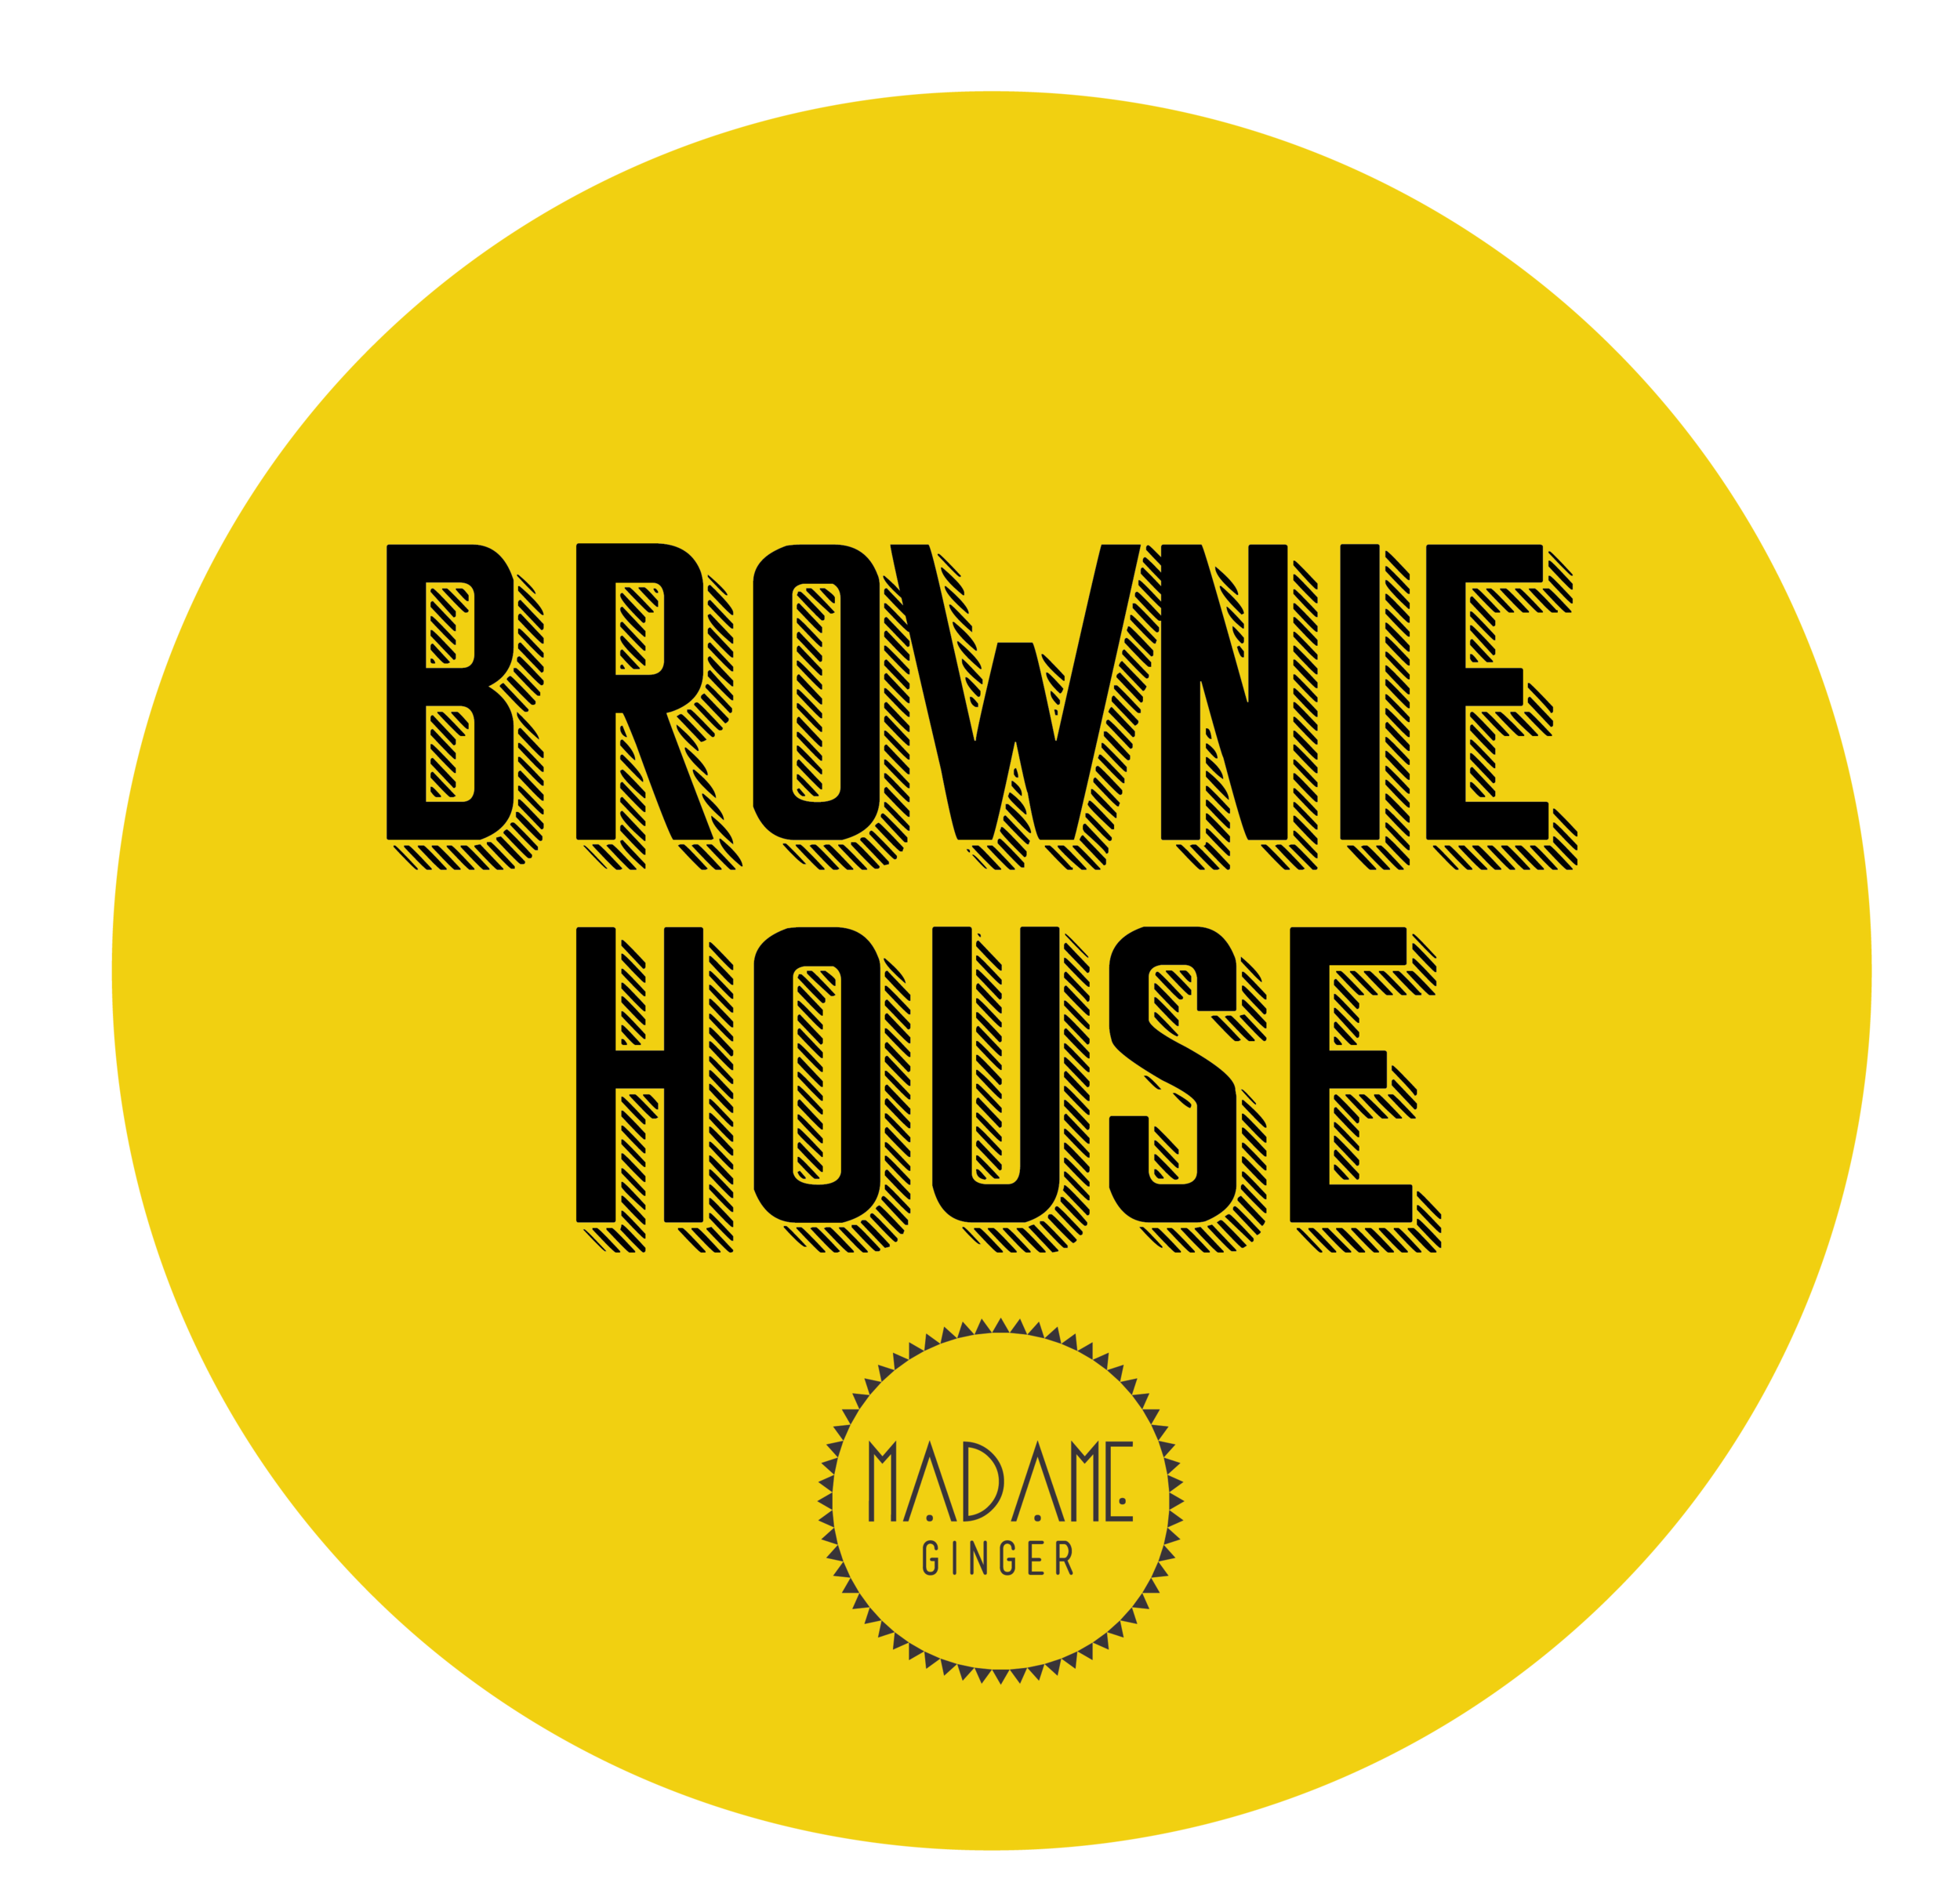 Brownie House-Madame Ginger_logo.png